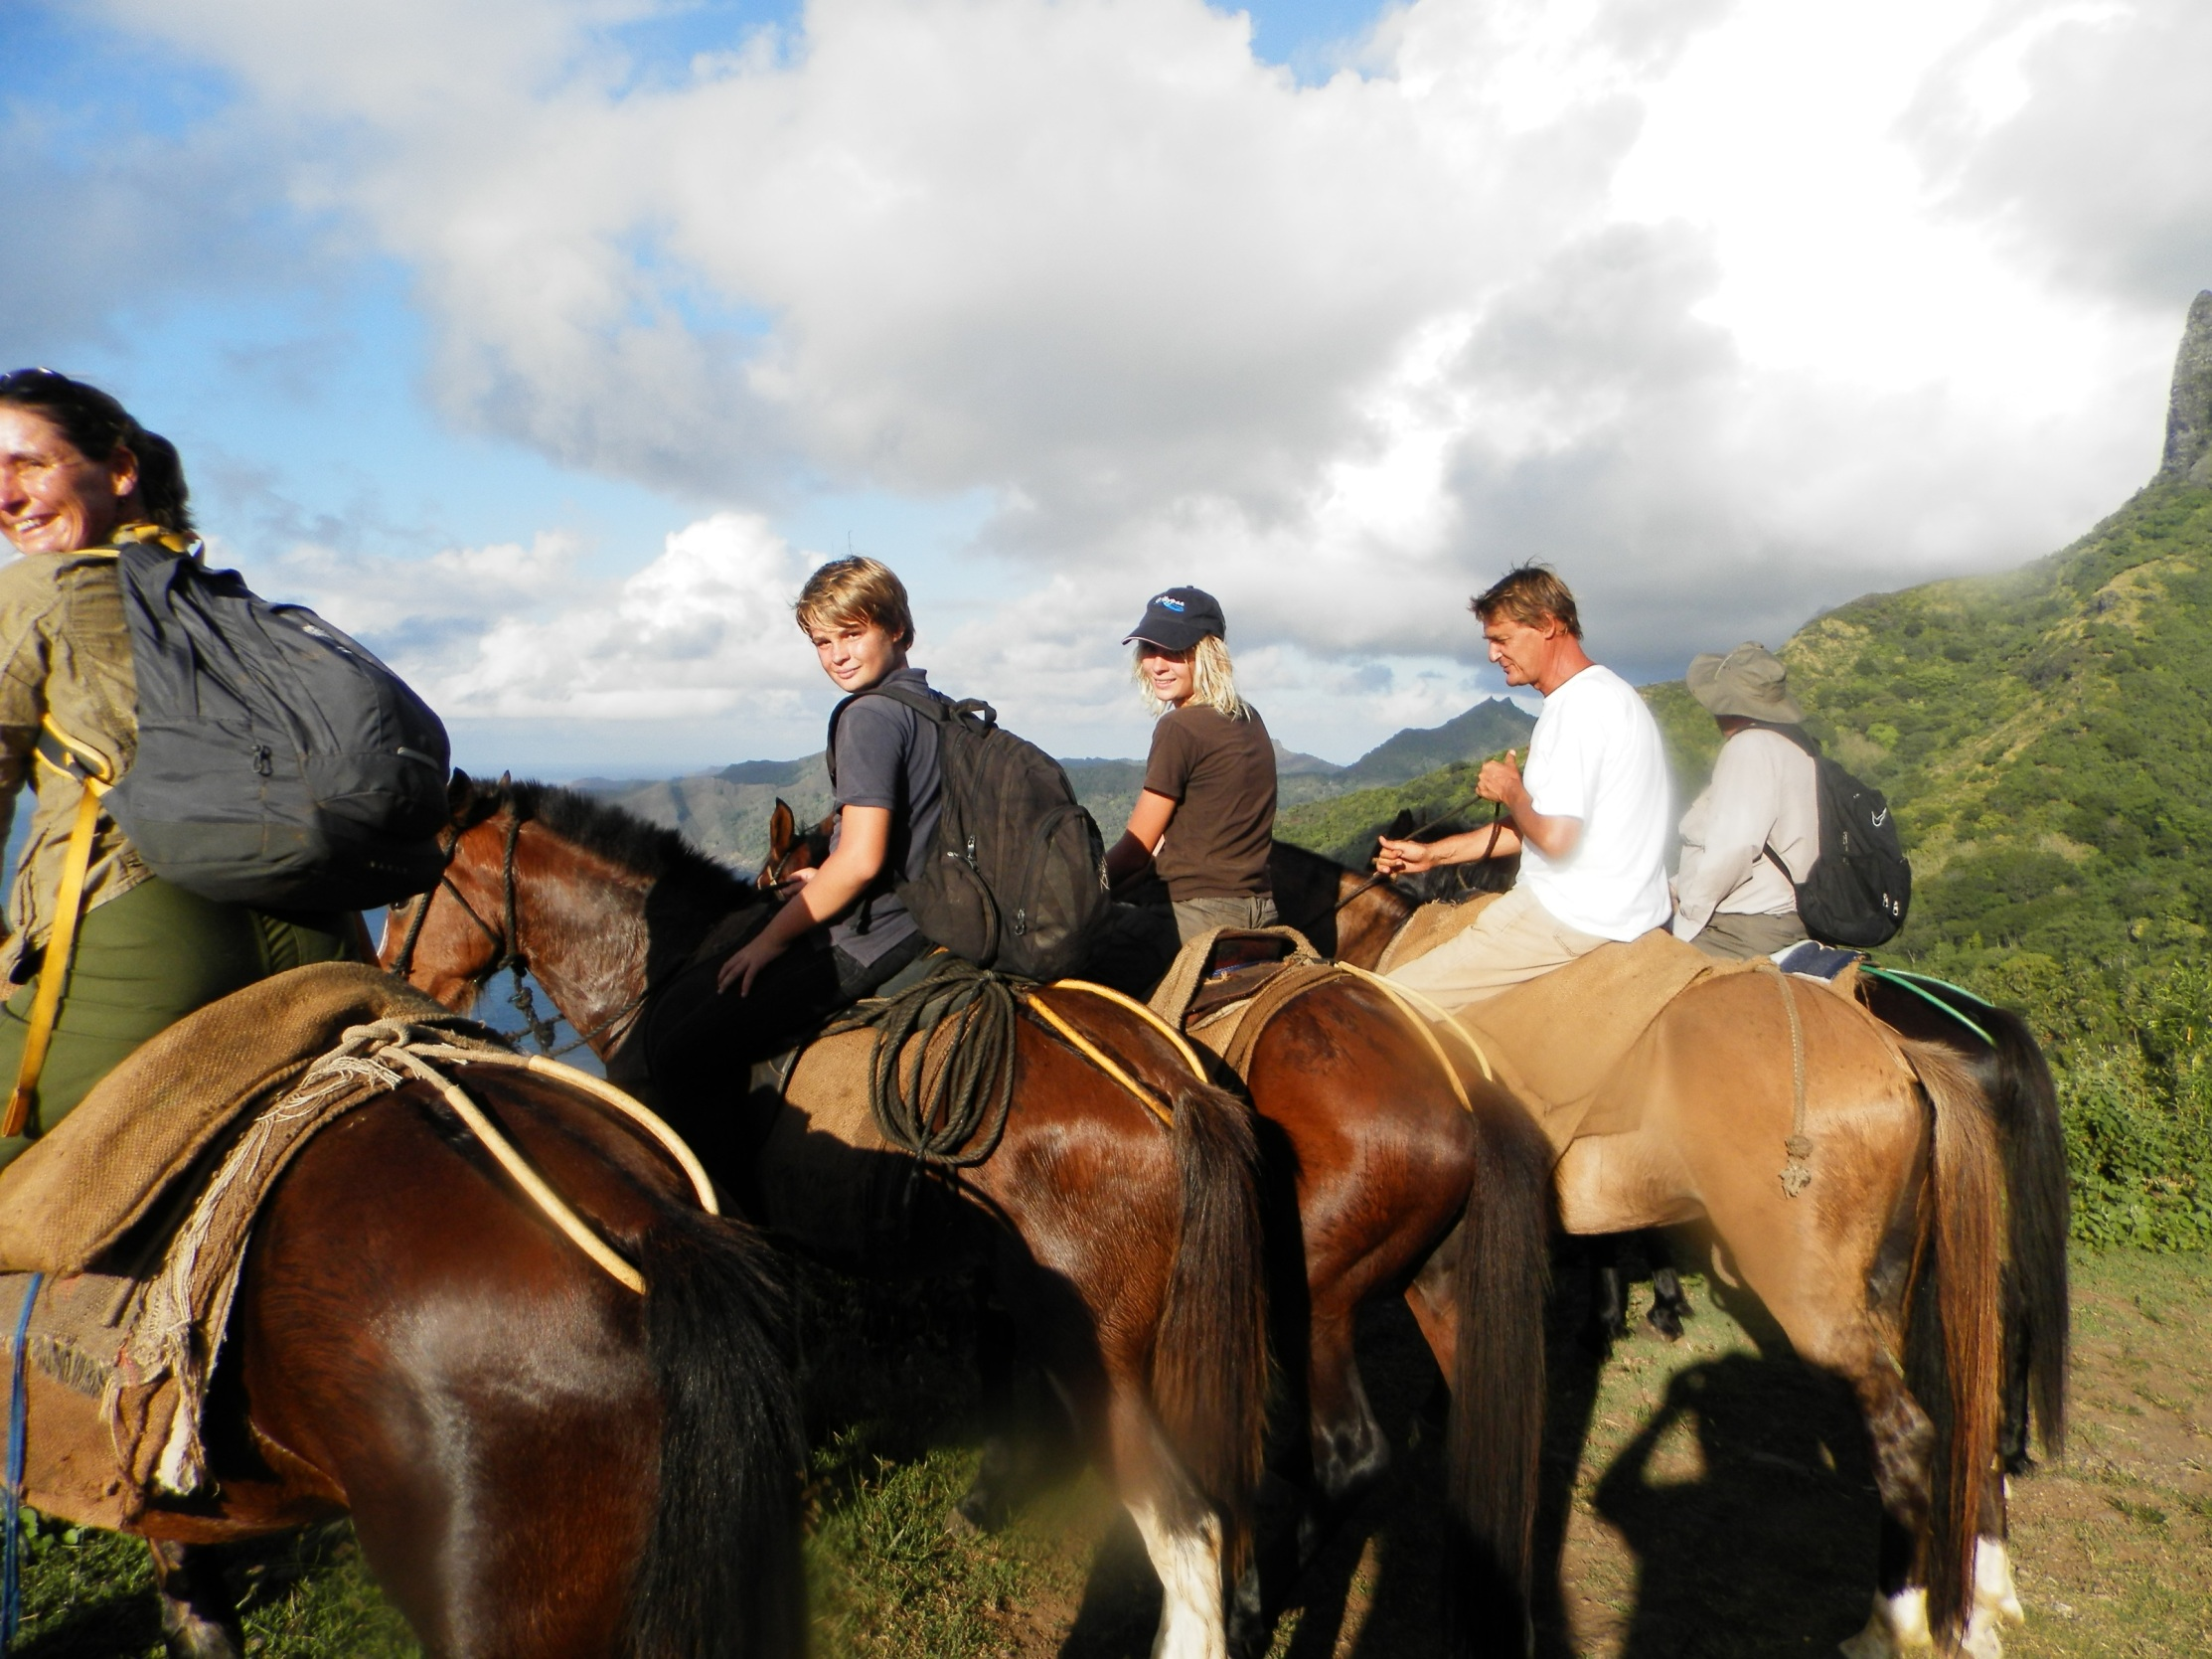 https://tahititourisme.nz/wp-content/uploads/2020/09/a-Cheval.jpg